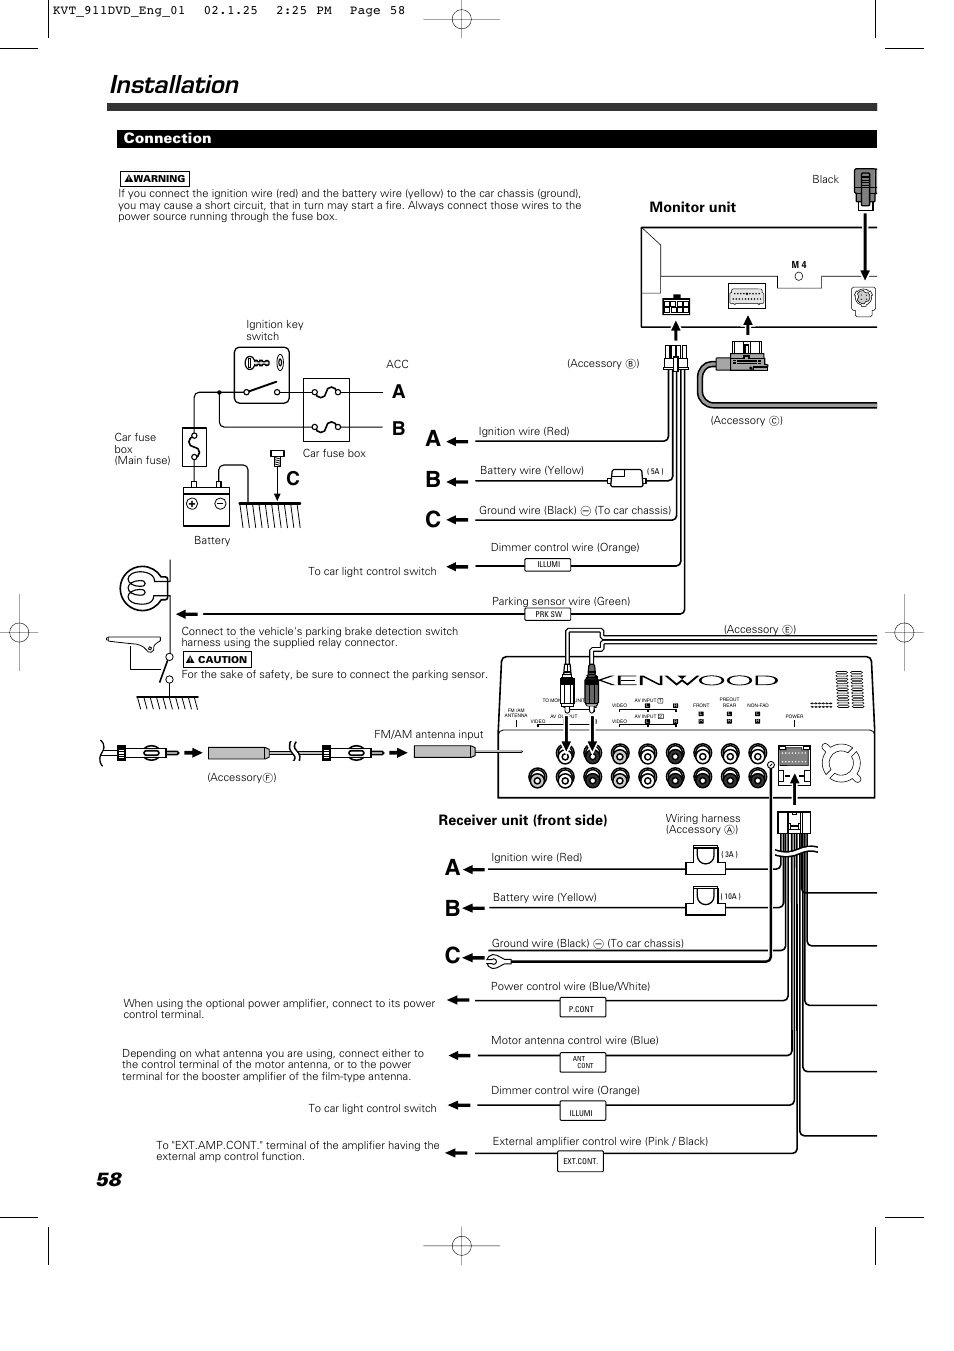 Kenwood Mobile Audio Wiring Harness Diagram on Bose Car Stereo Wiring Diagrams